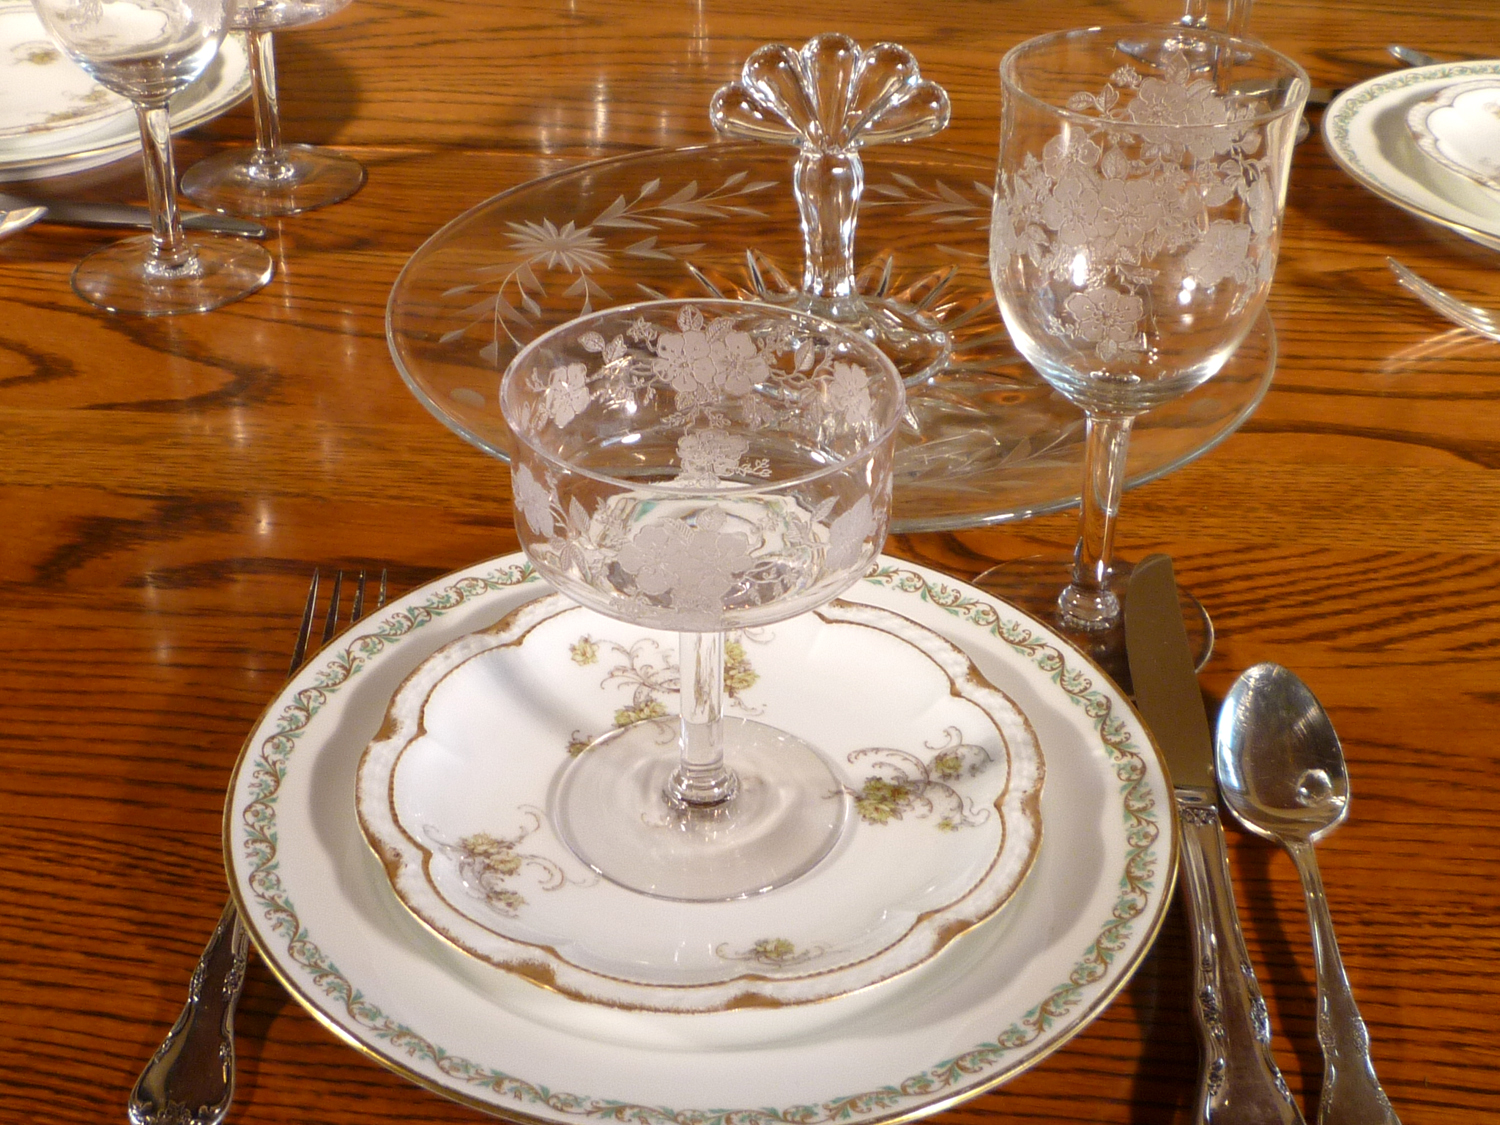 Haviland Limoges Dinnerware Secretaries Primrose Stemware Paden City Center Handled Server